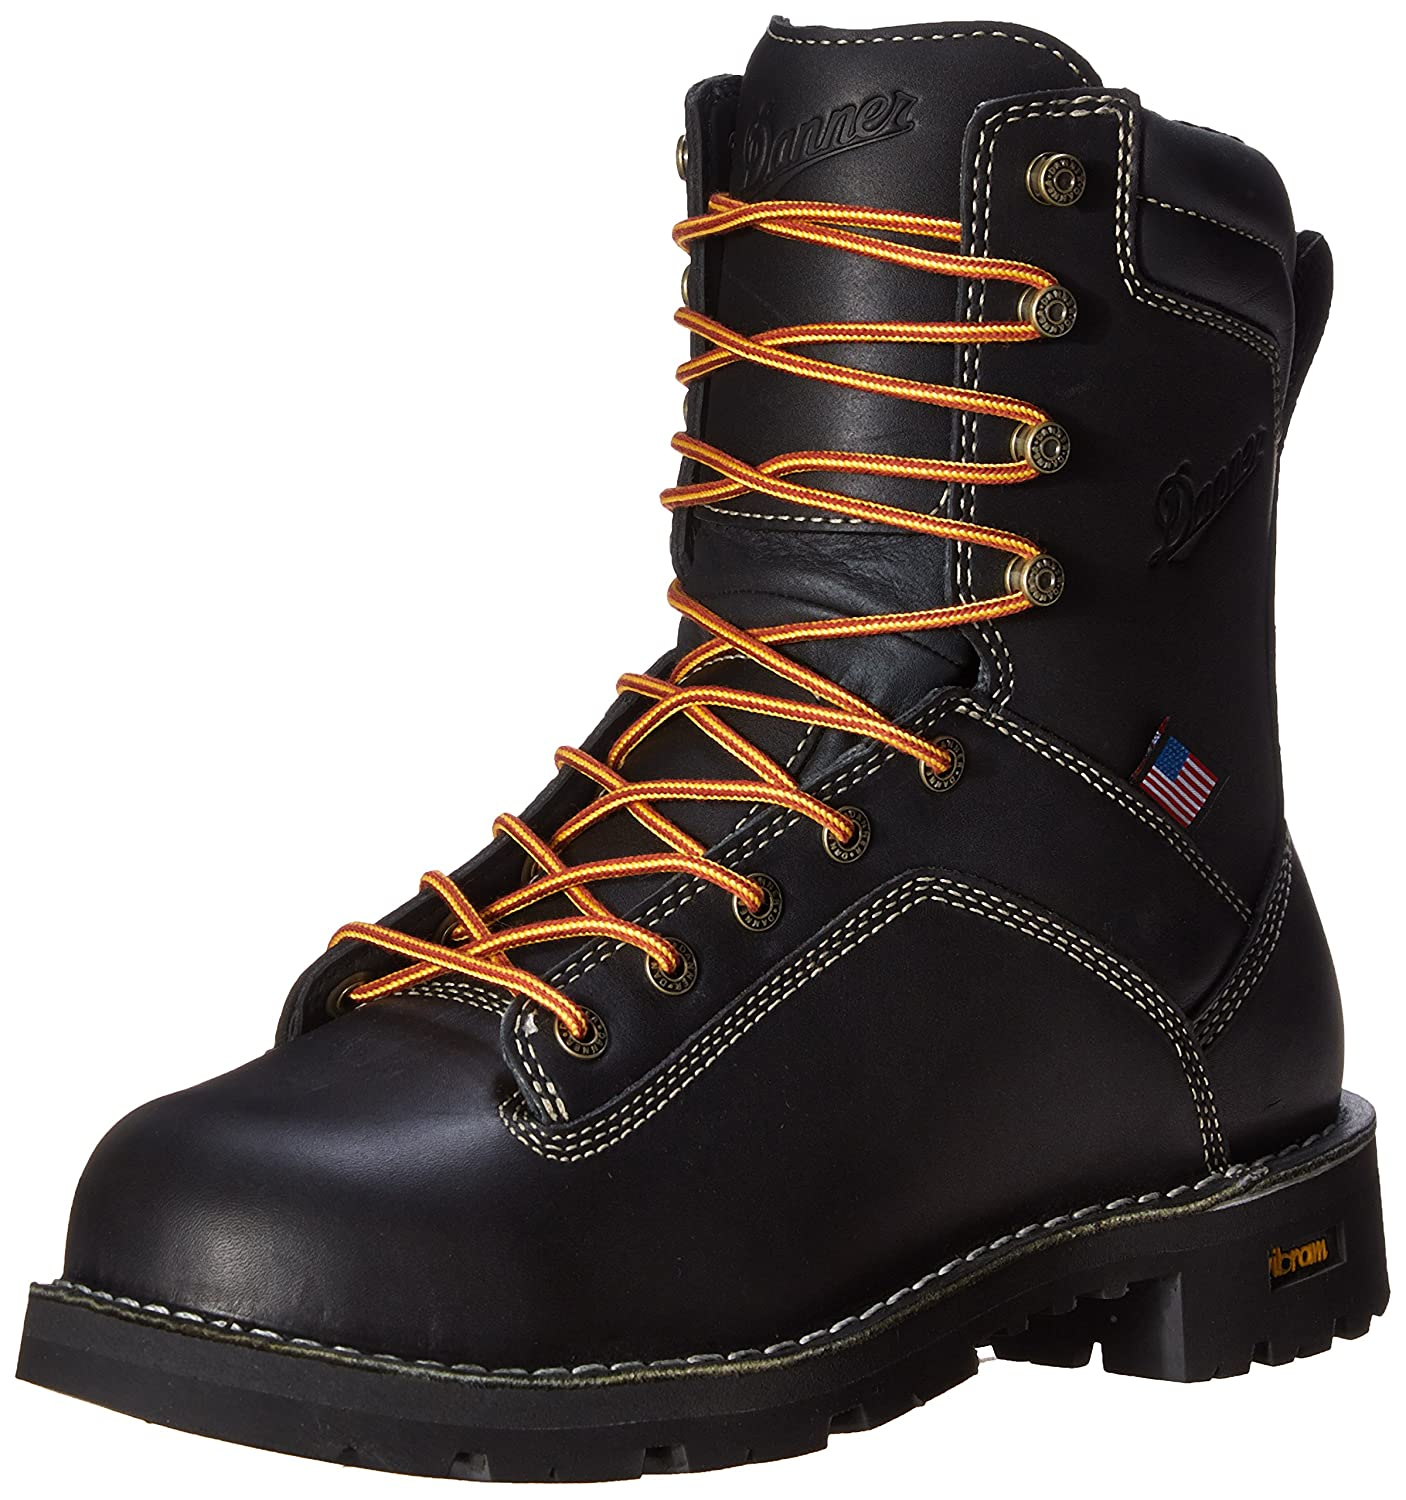 aaf2976377a Danner Men's Quarry USA 8-Inch Alloy Toe Work Boot